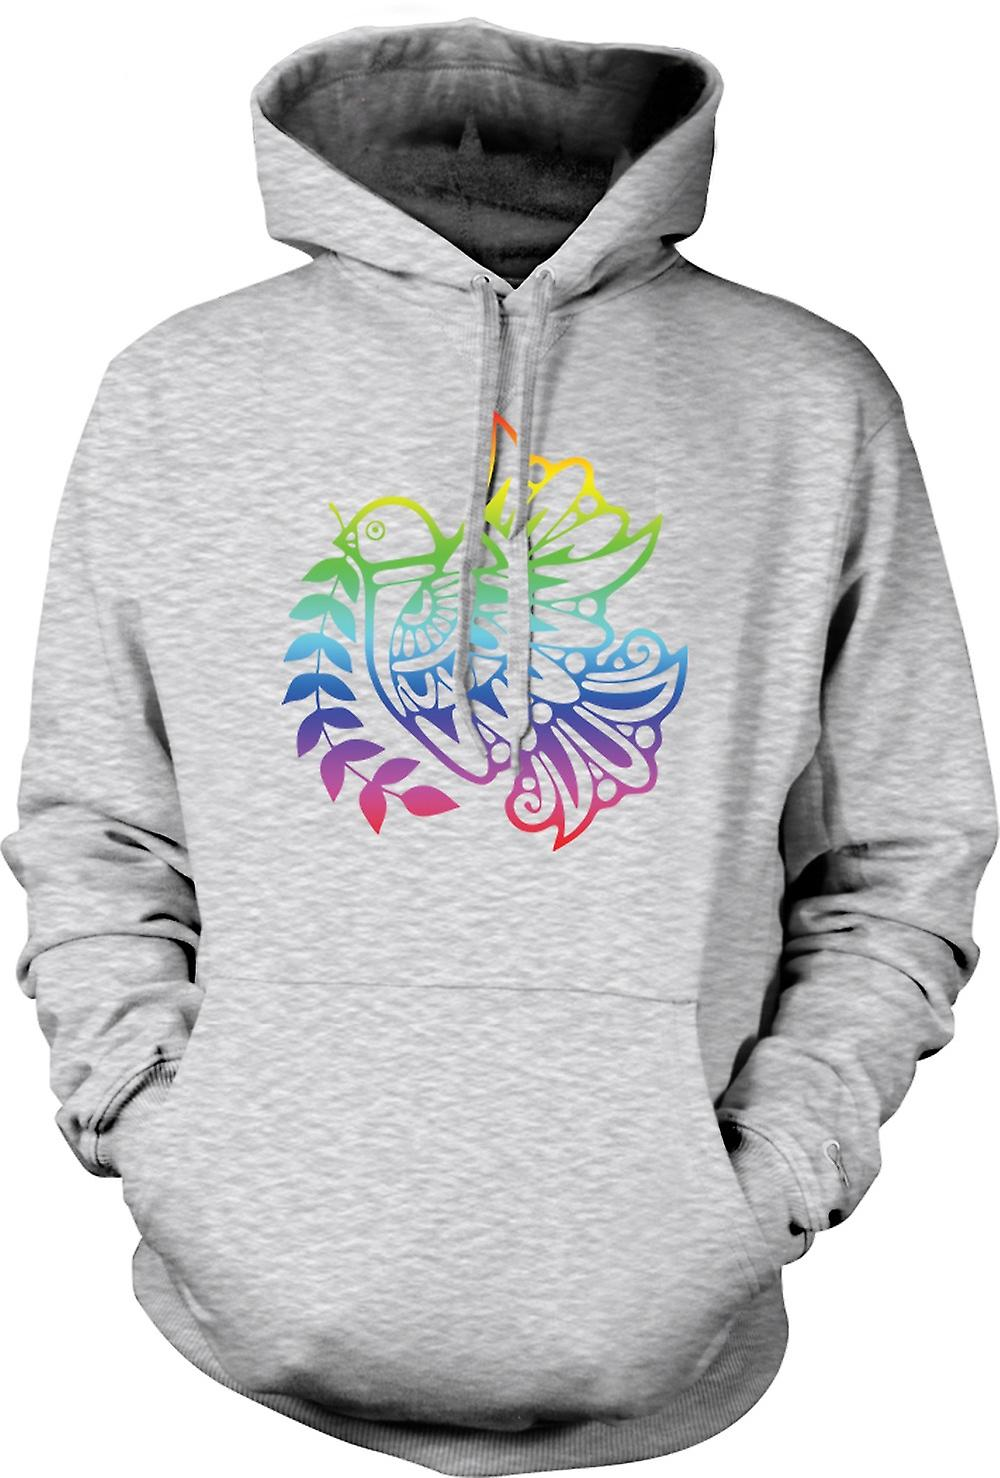 Mens Hoodie - Peace Dove Rainbow - Cool